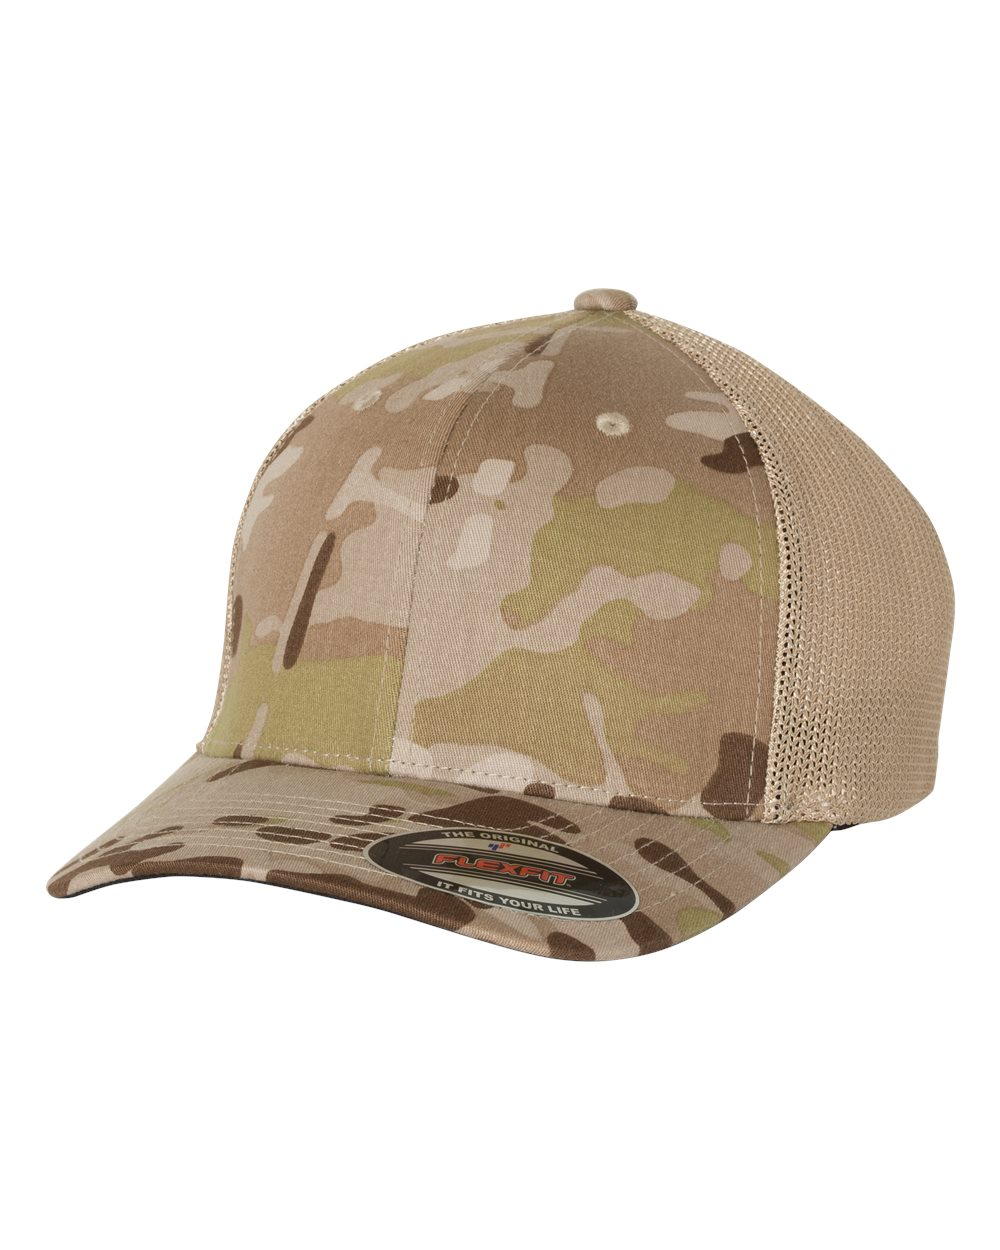 click to view Multicam Arid/ Tan